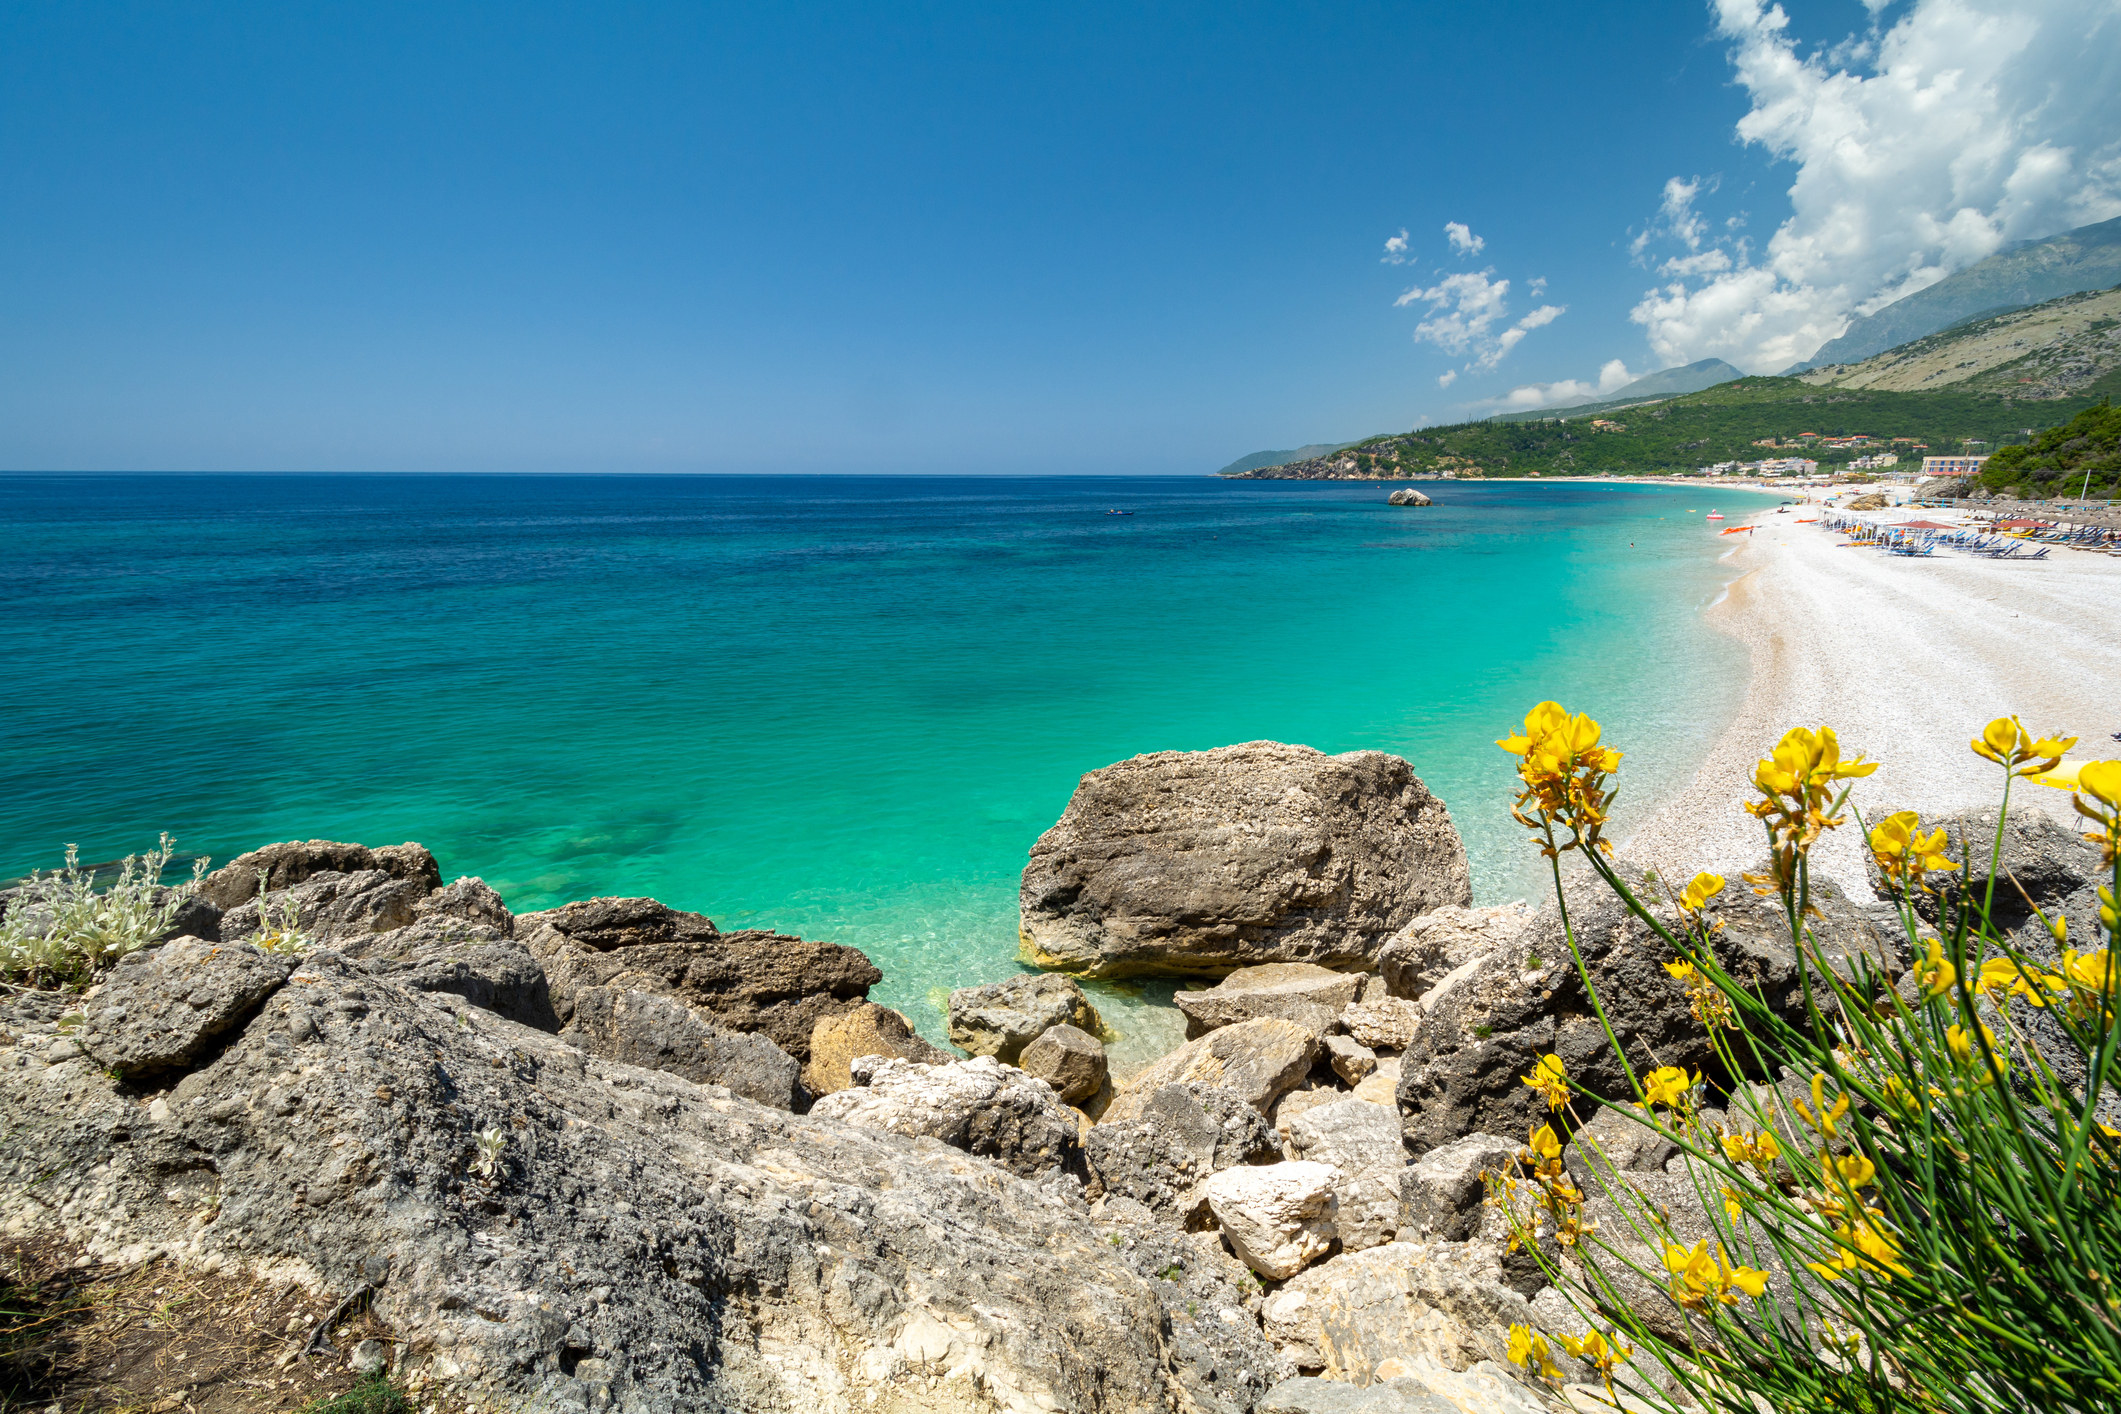 A white sand beach with bright blue water, and rocks and wildflowers in the foreground